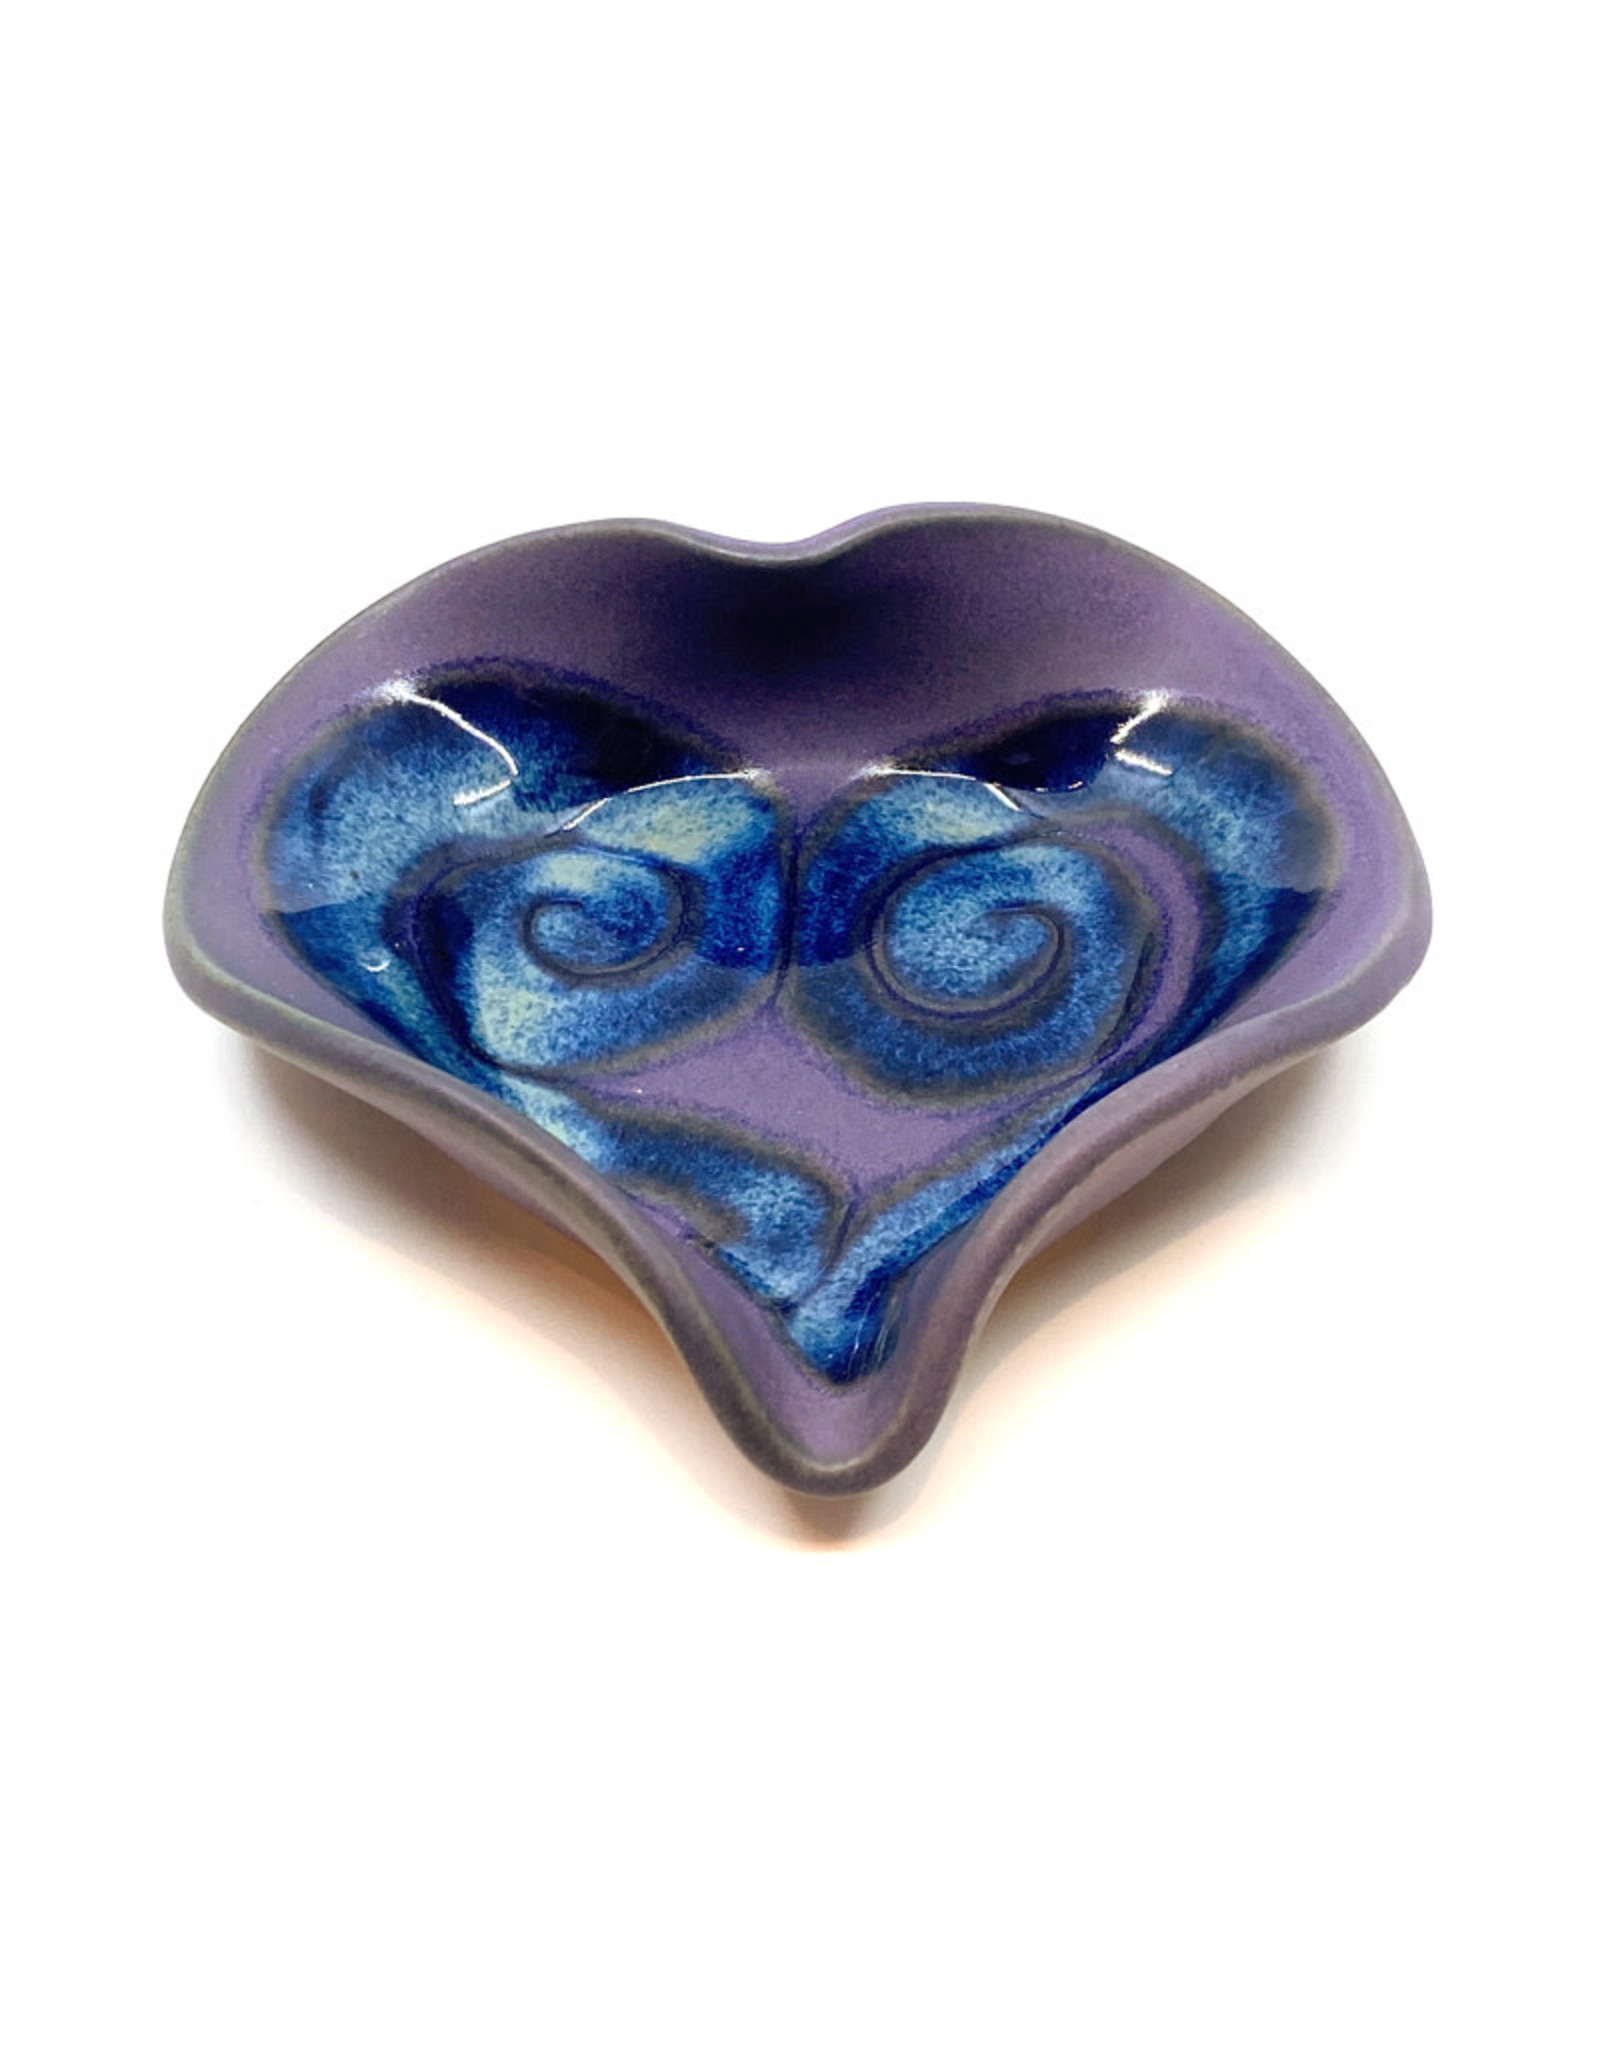 HILBORN POTTERY PERIWINKLE HEART DISH WITH SPOON